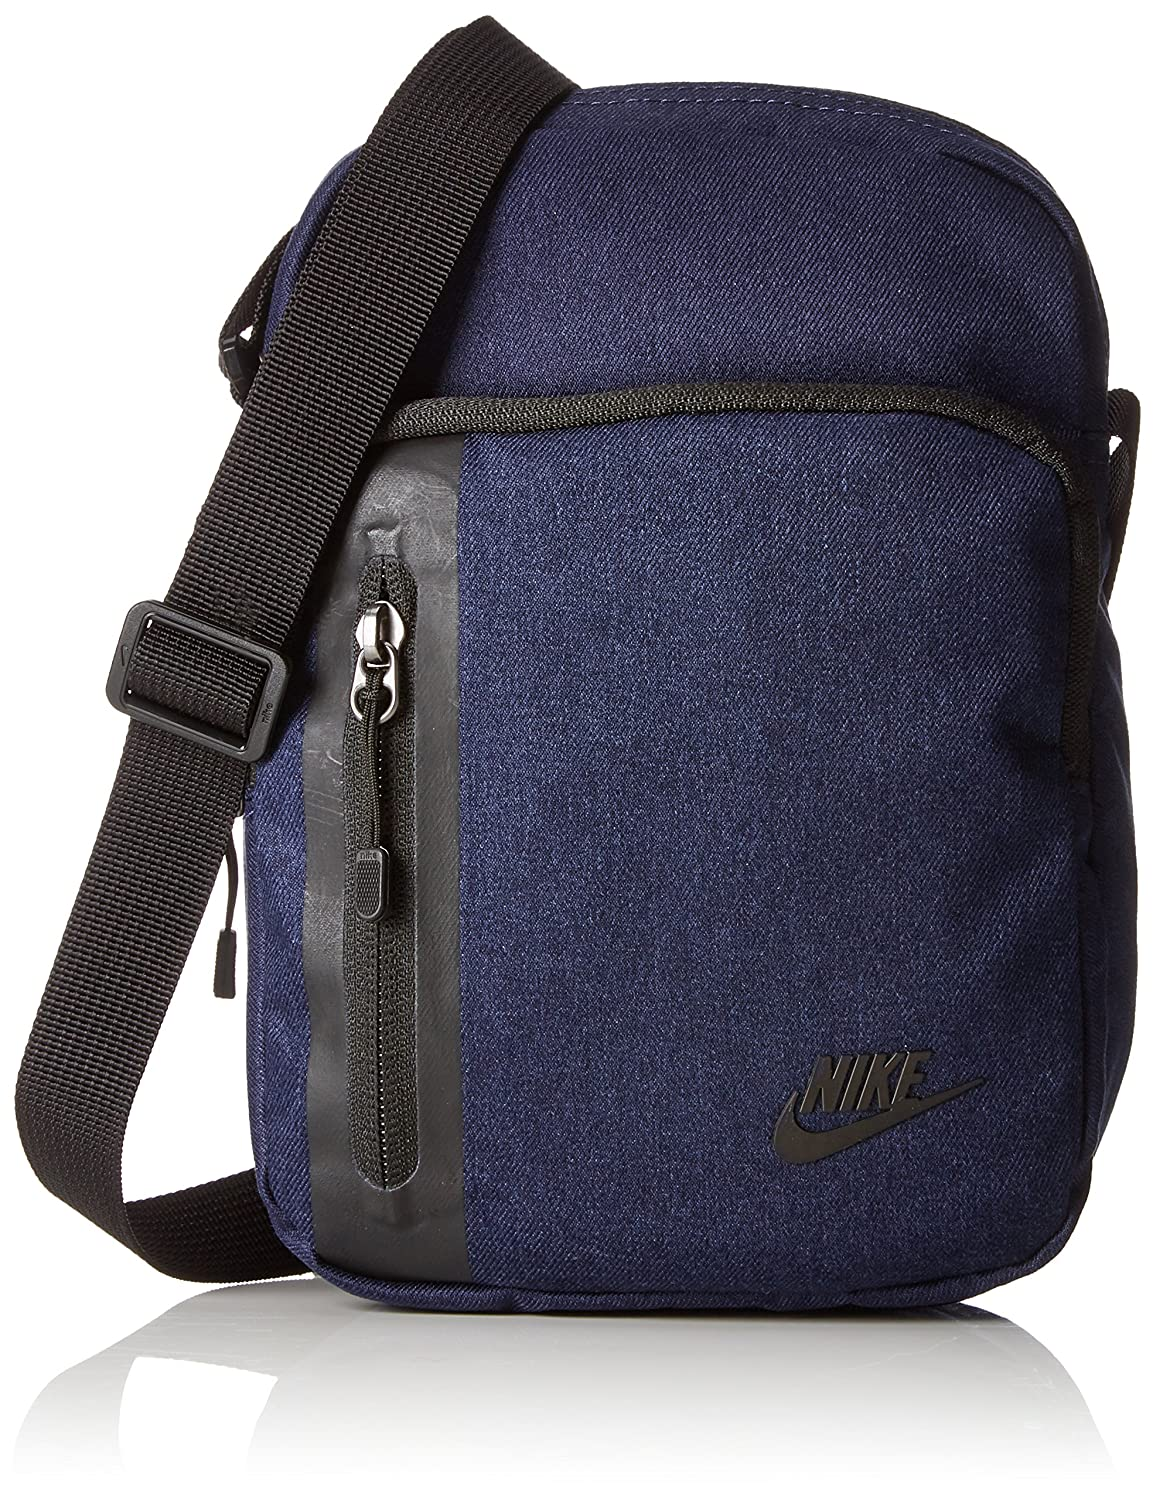 Mixte 3L Core Small Items 3.0 Nike Sac bandouliere